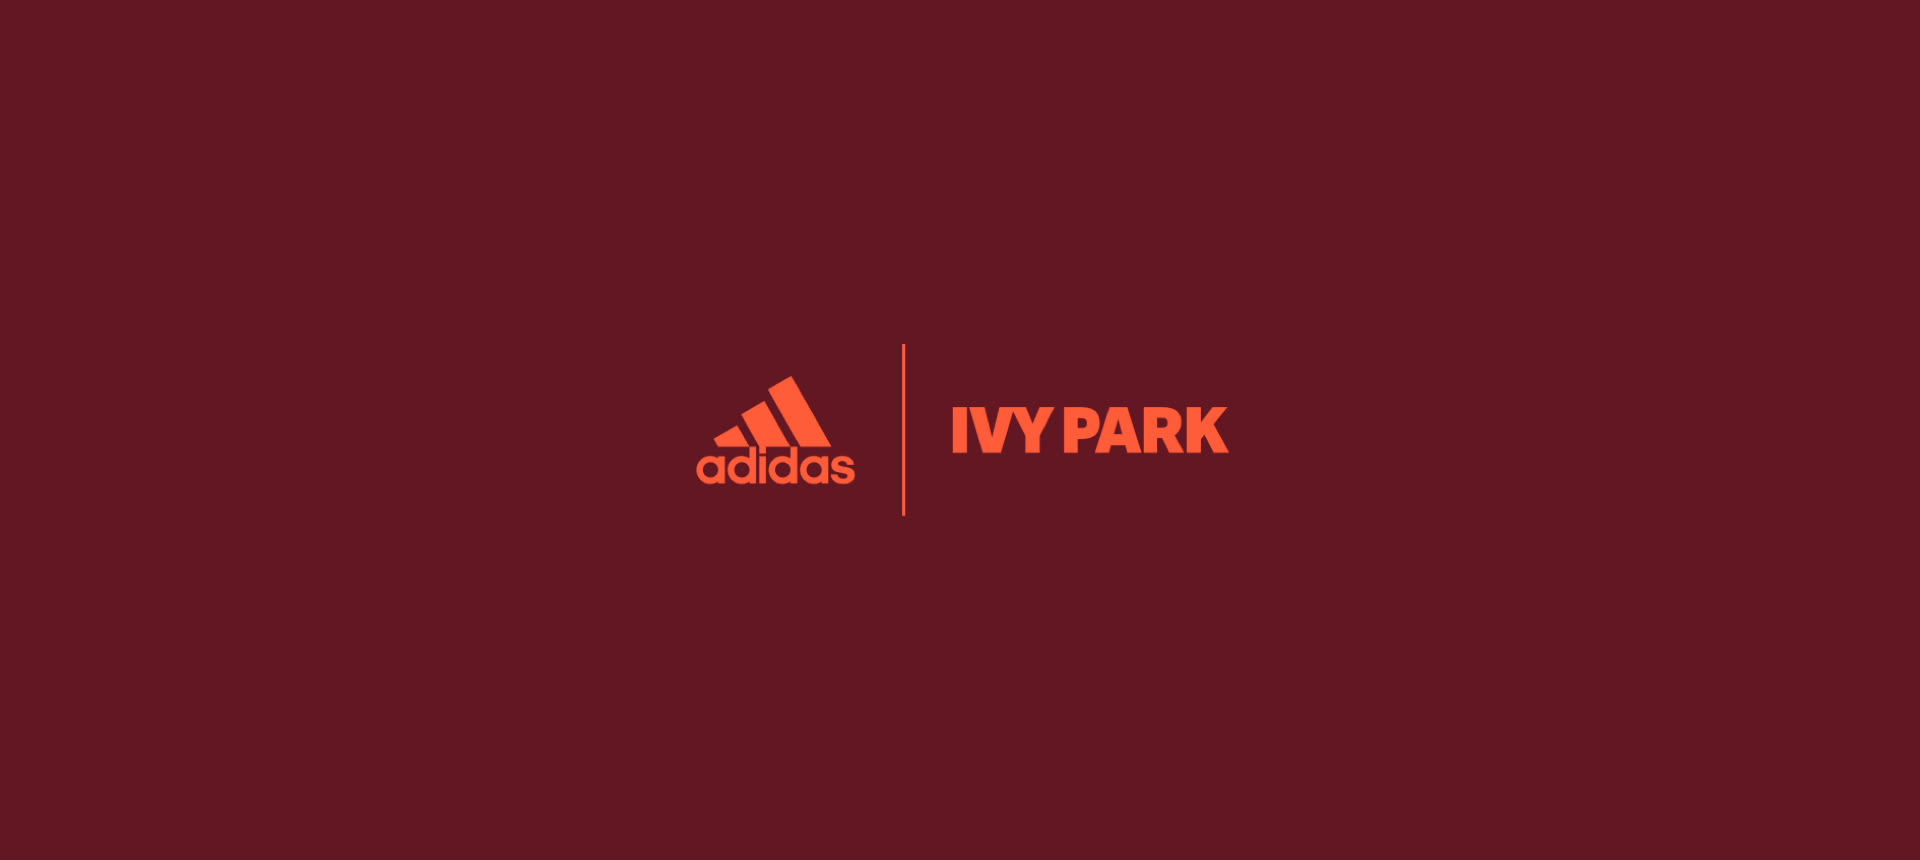 Adidas Ivy Park Collection Coming Soon Adidas Uk